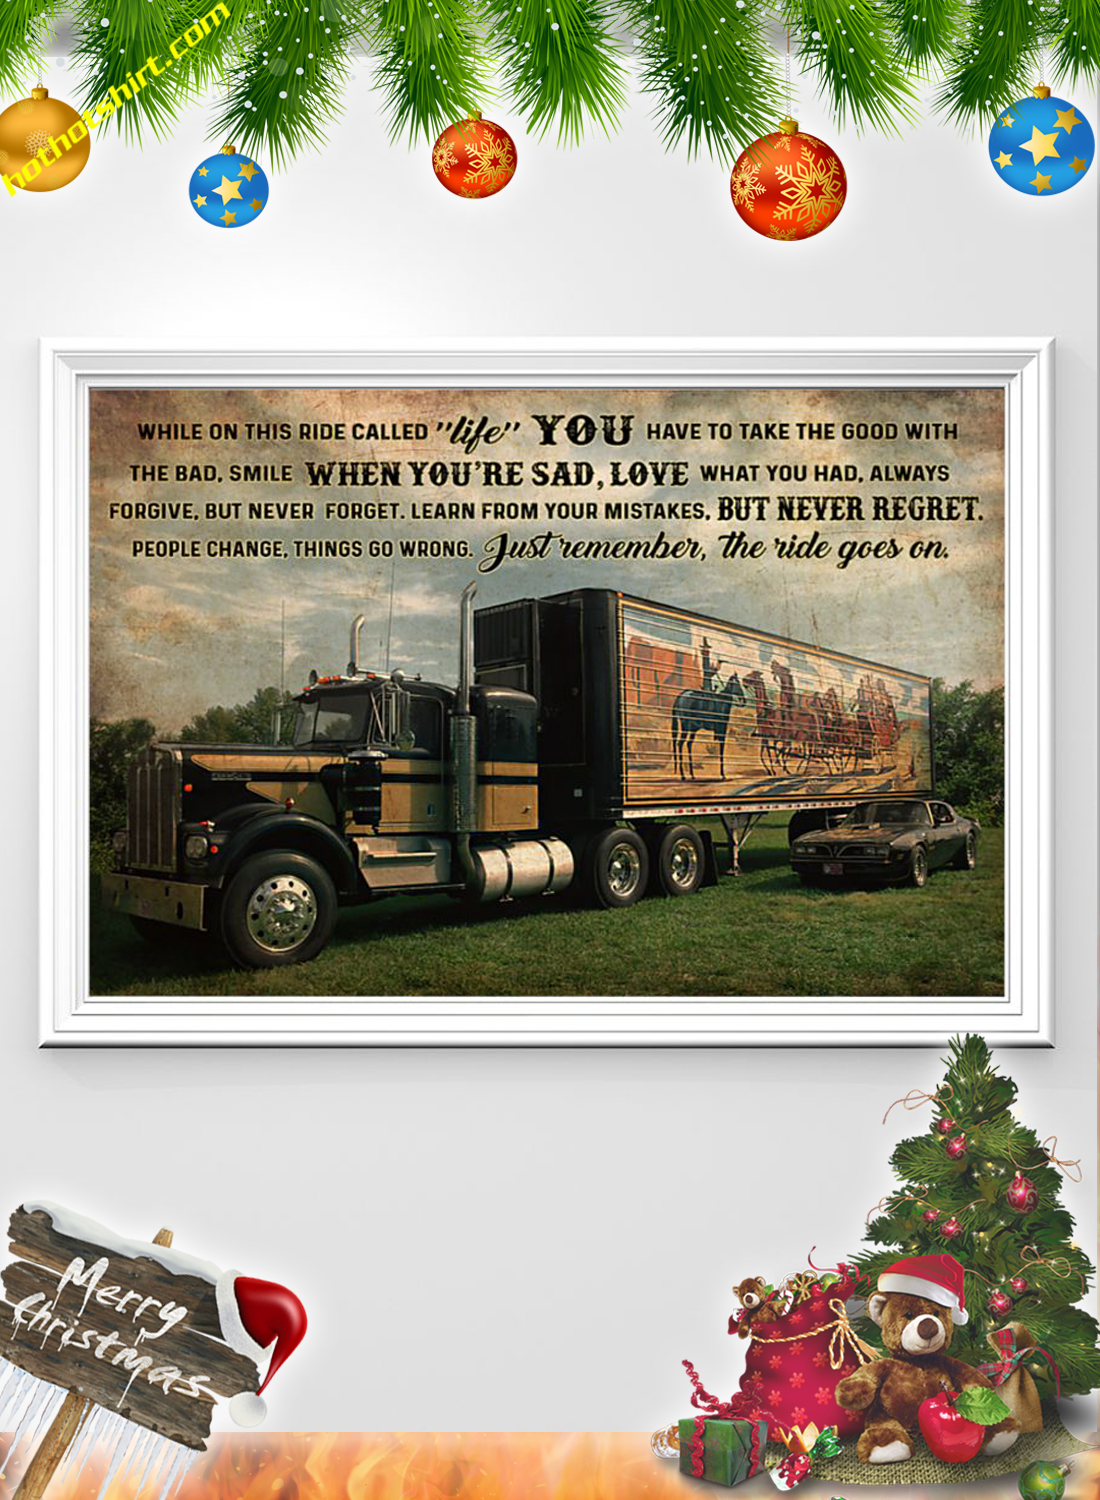 Smokey Truck While on this ride poster 1